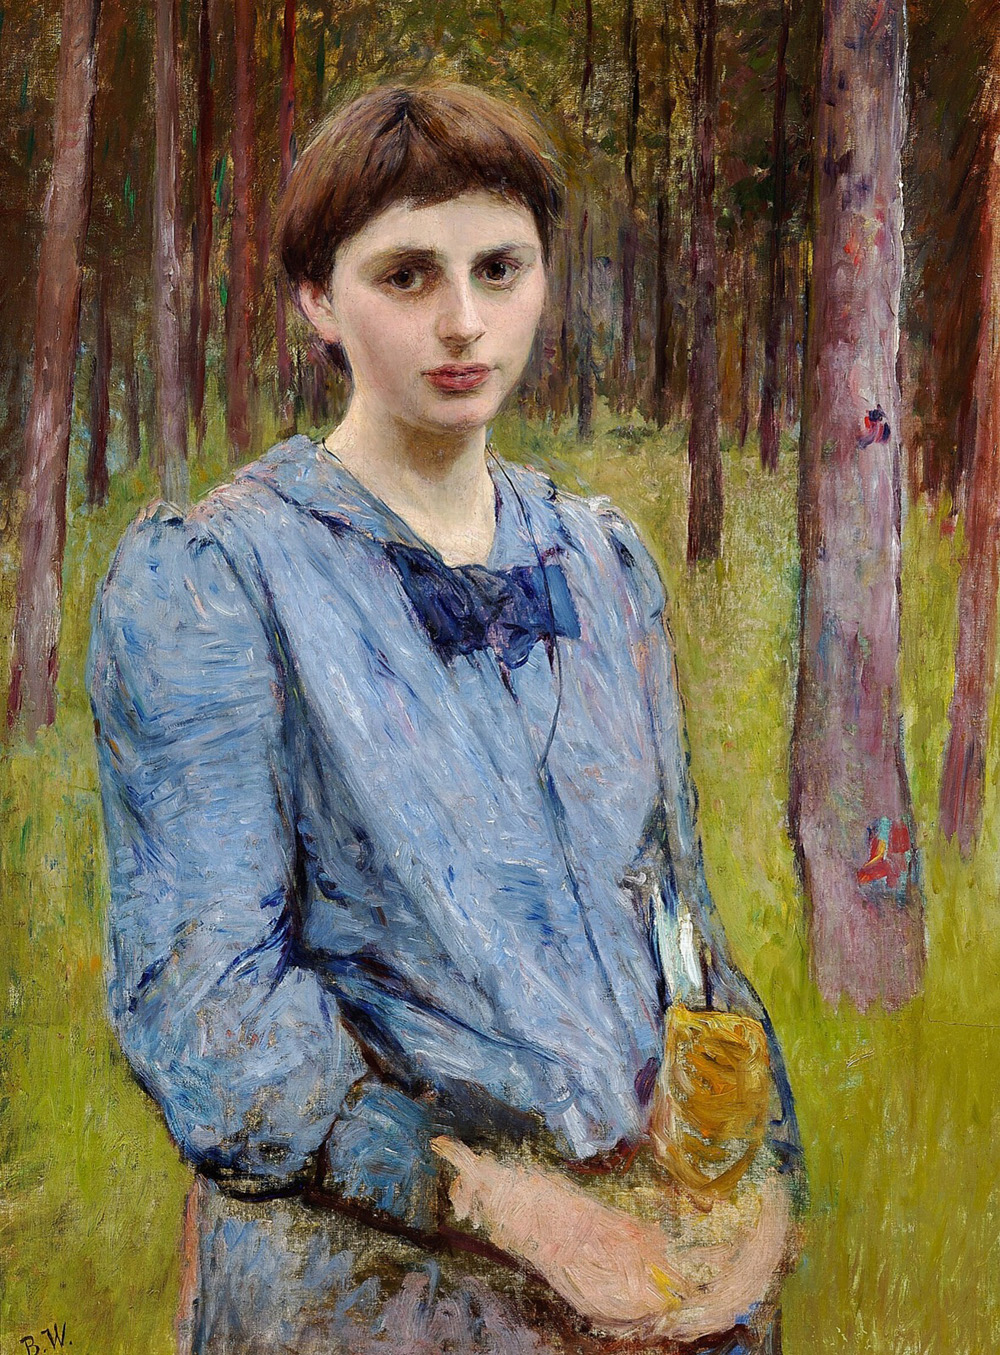 7_1879_PORTRET-MOLODOI-ZENSINY-V-SINEM-PLATE-Portrait-of-a-young-woman-in-a-blue-dress_100-K-73_K.M._CASTNOE-SOBRANIE.jpg